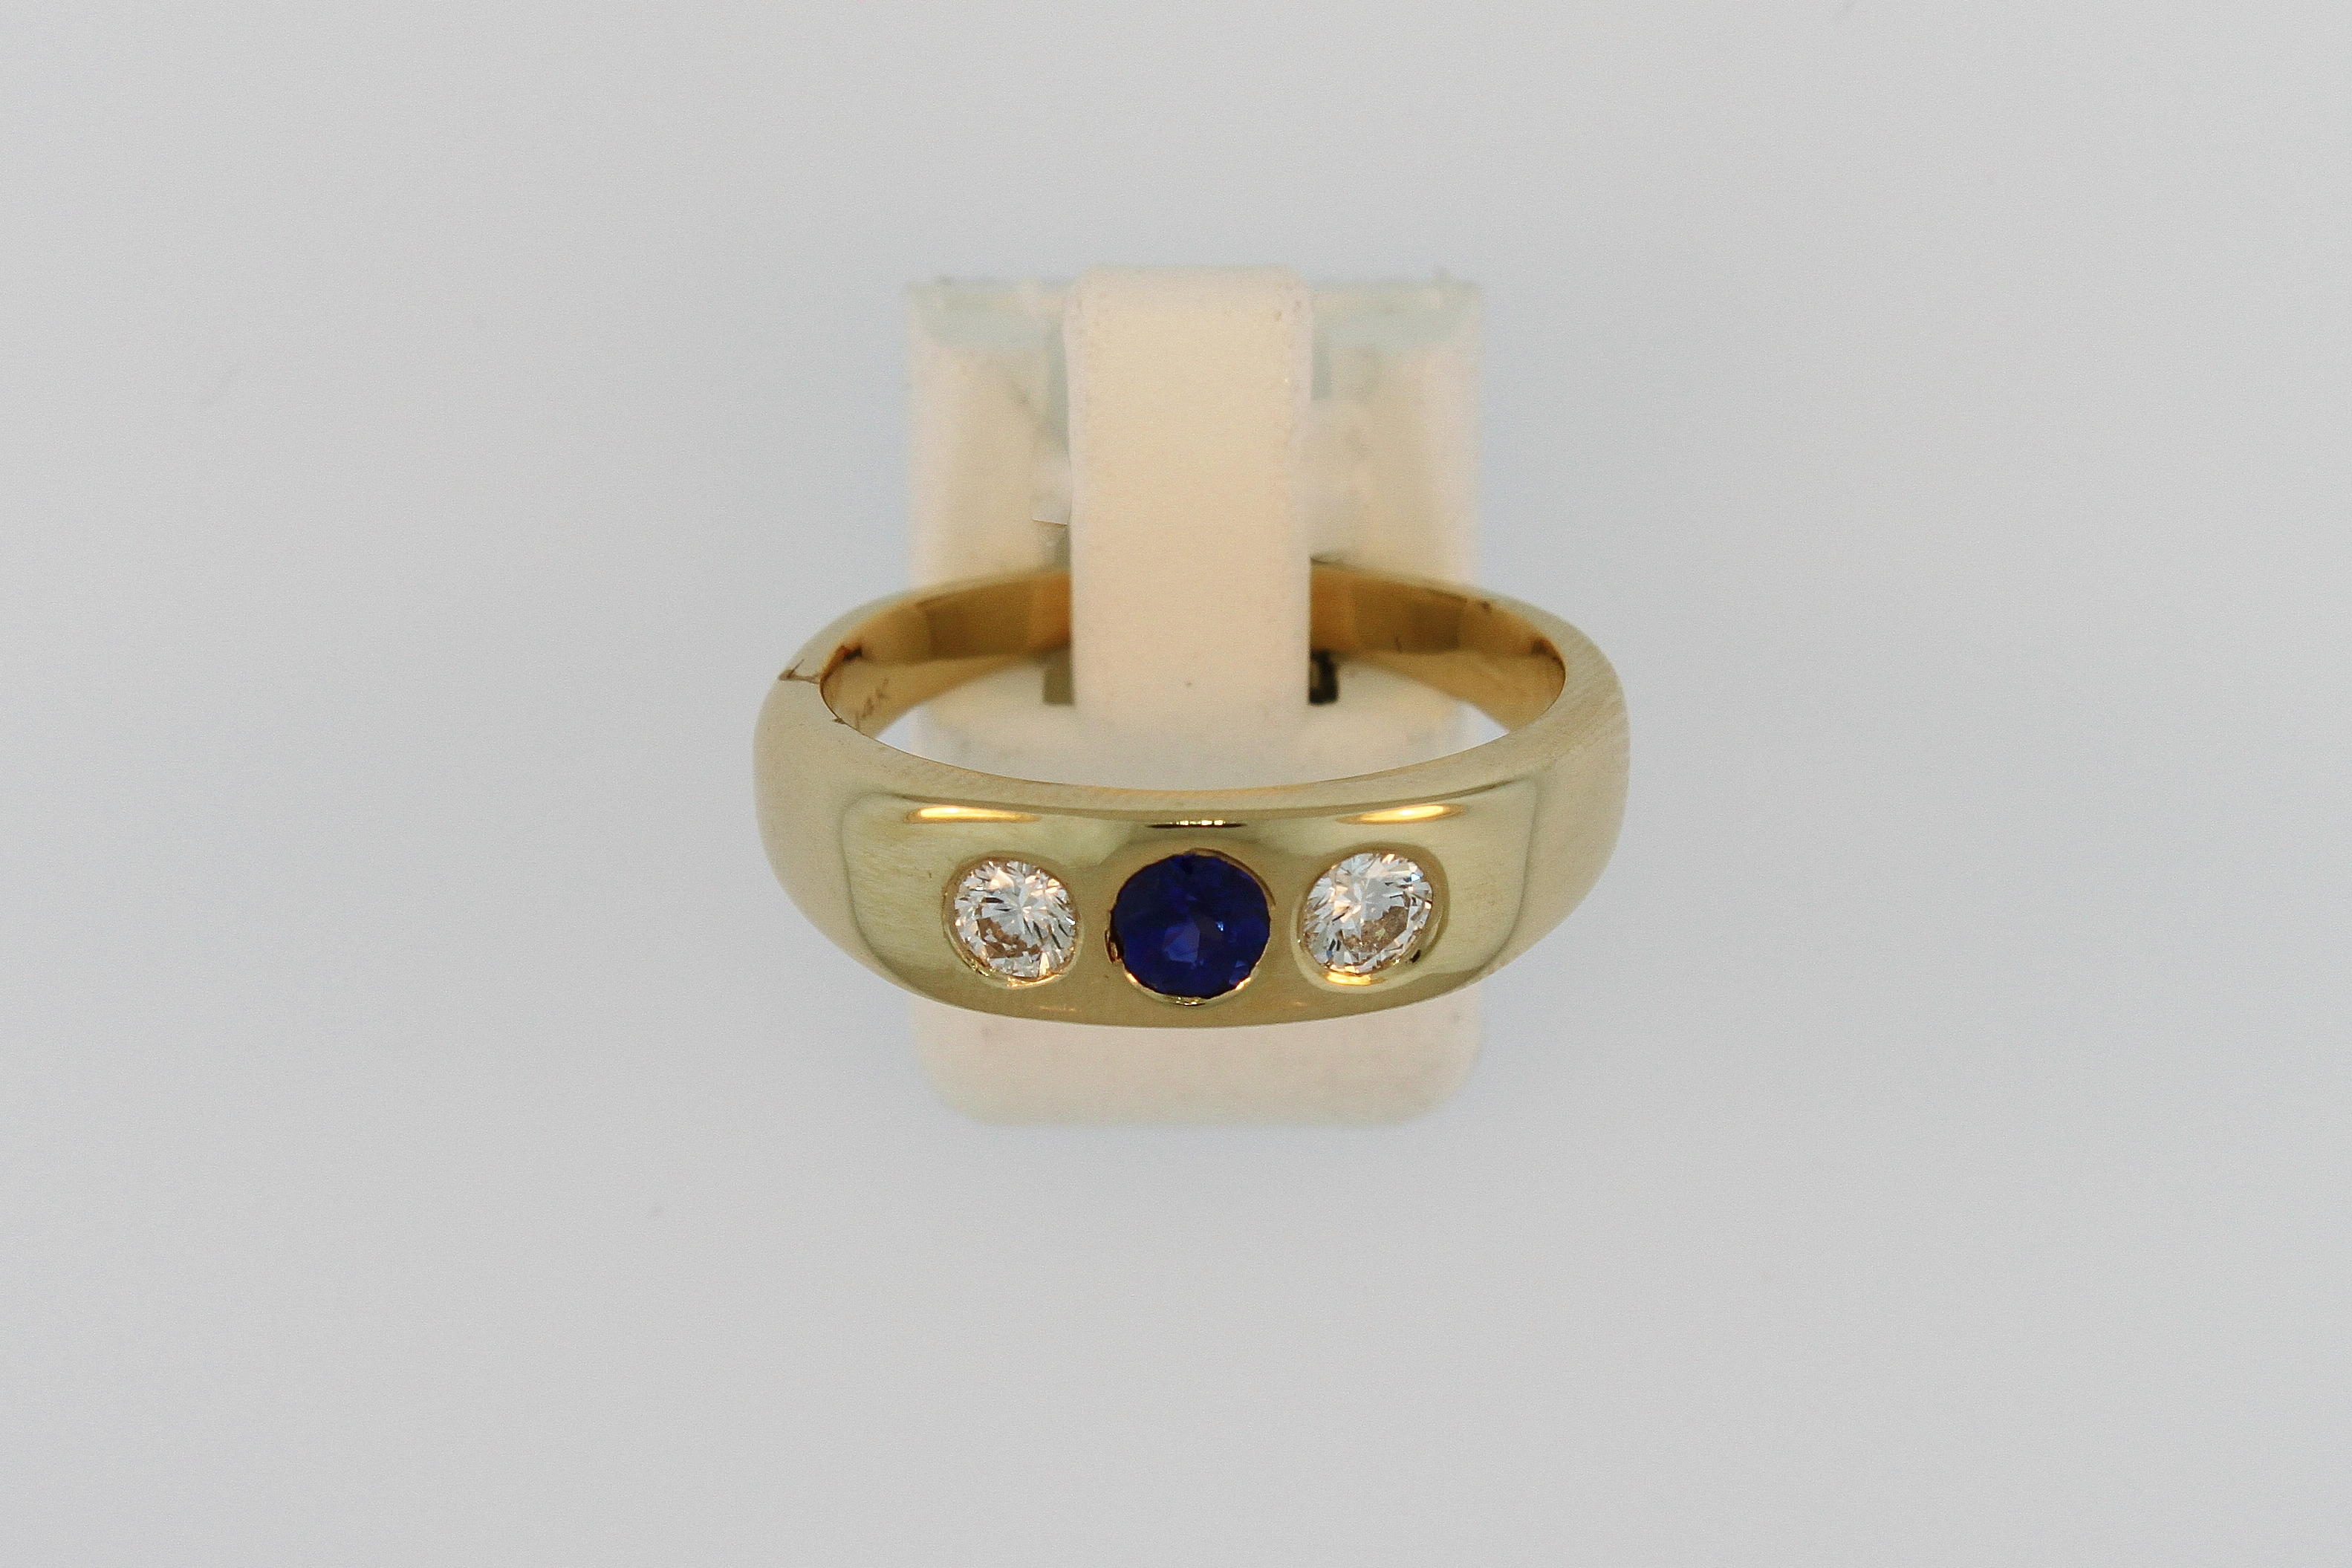 ring man mens from gold etsy com details now onlybracelet sapphire buy ori